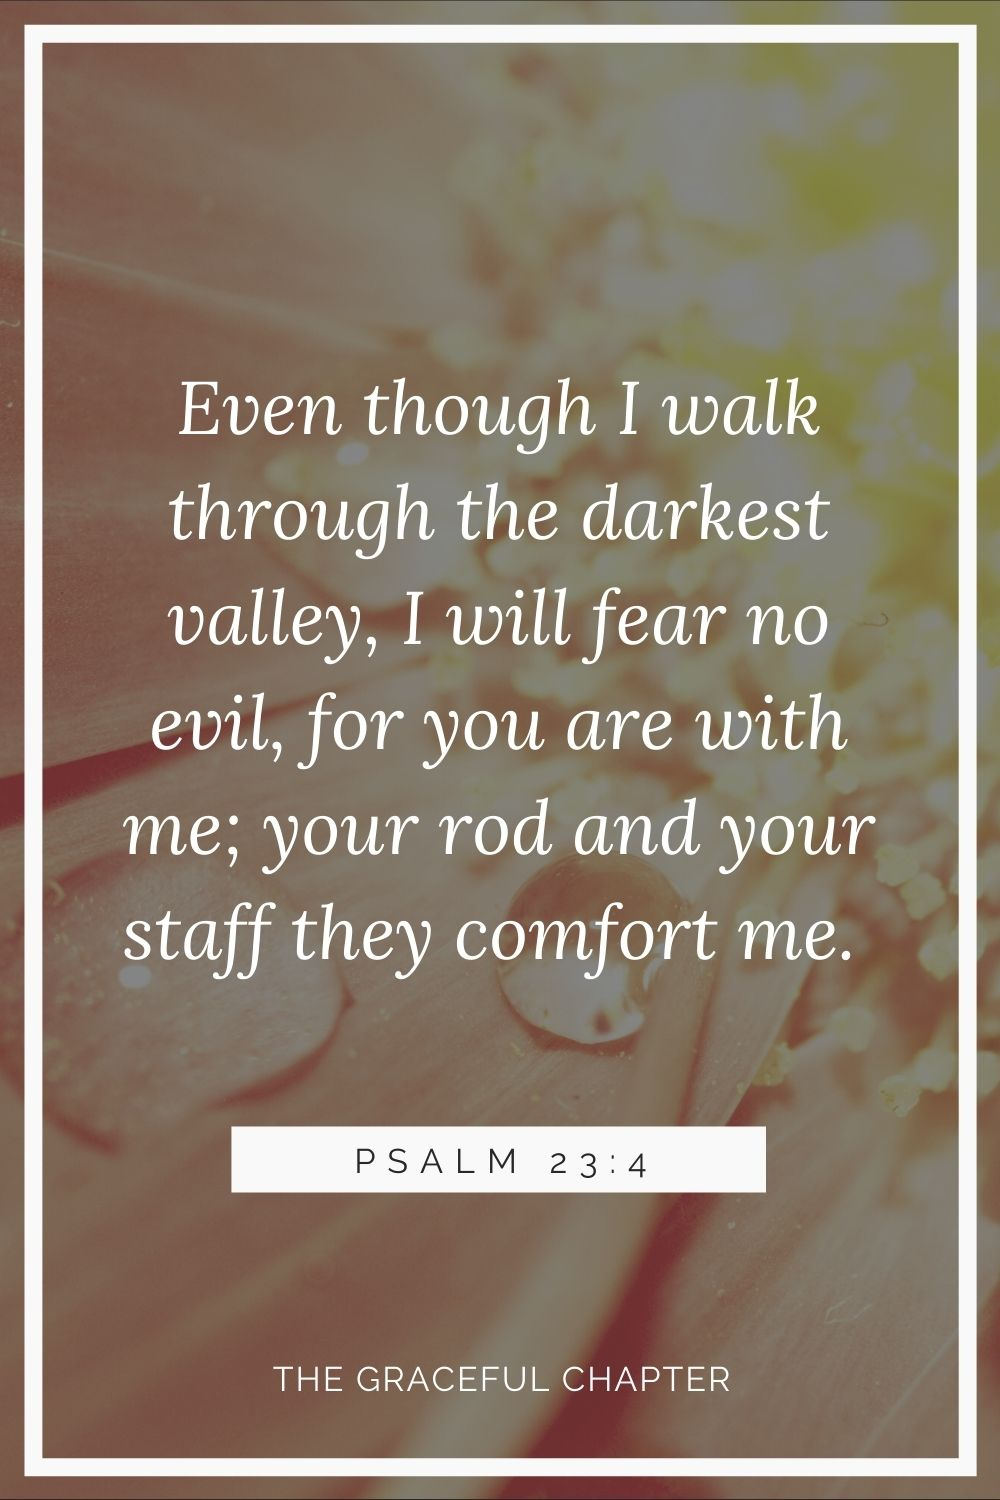 Even though I walk through the darkest valley, I will fear no evil, for you are with me; your rod and your staff, they comfort me. Psalm 23:4